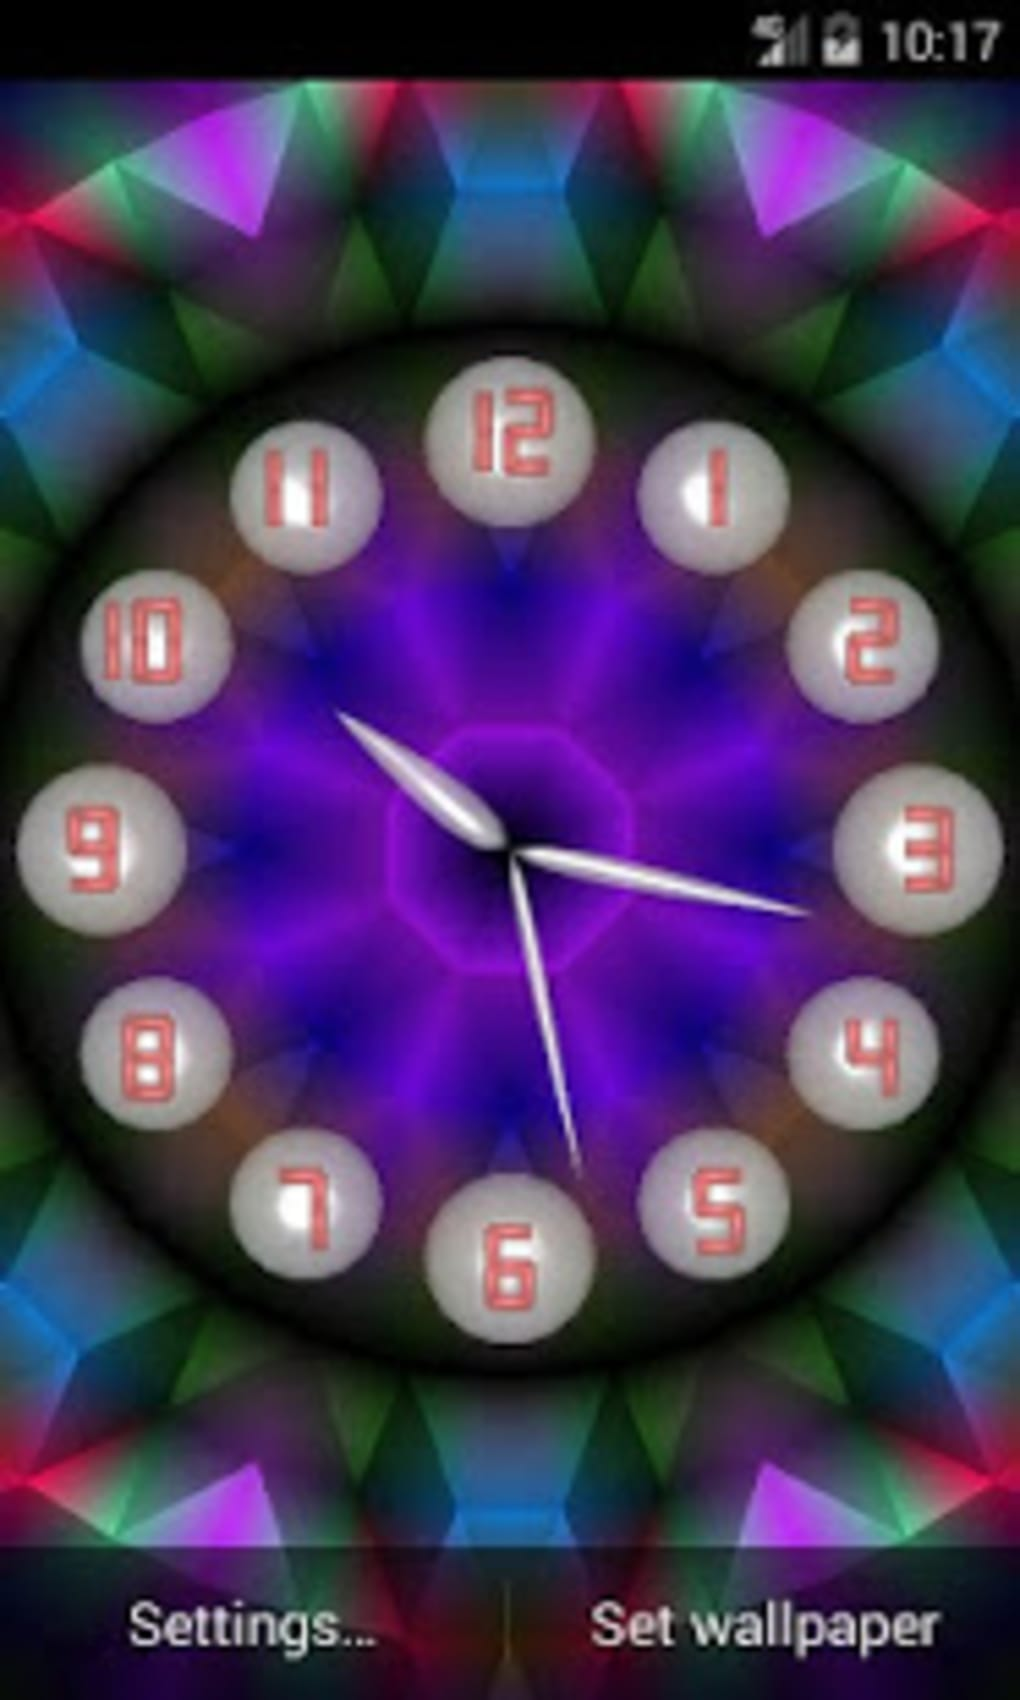 Analog Clock Live Wallpaper Apk For Android Download